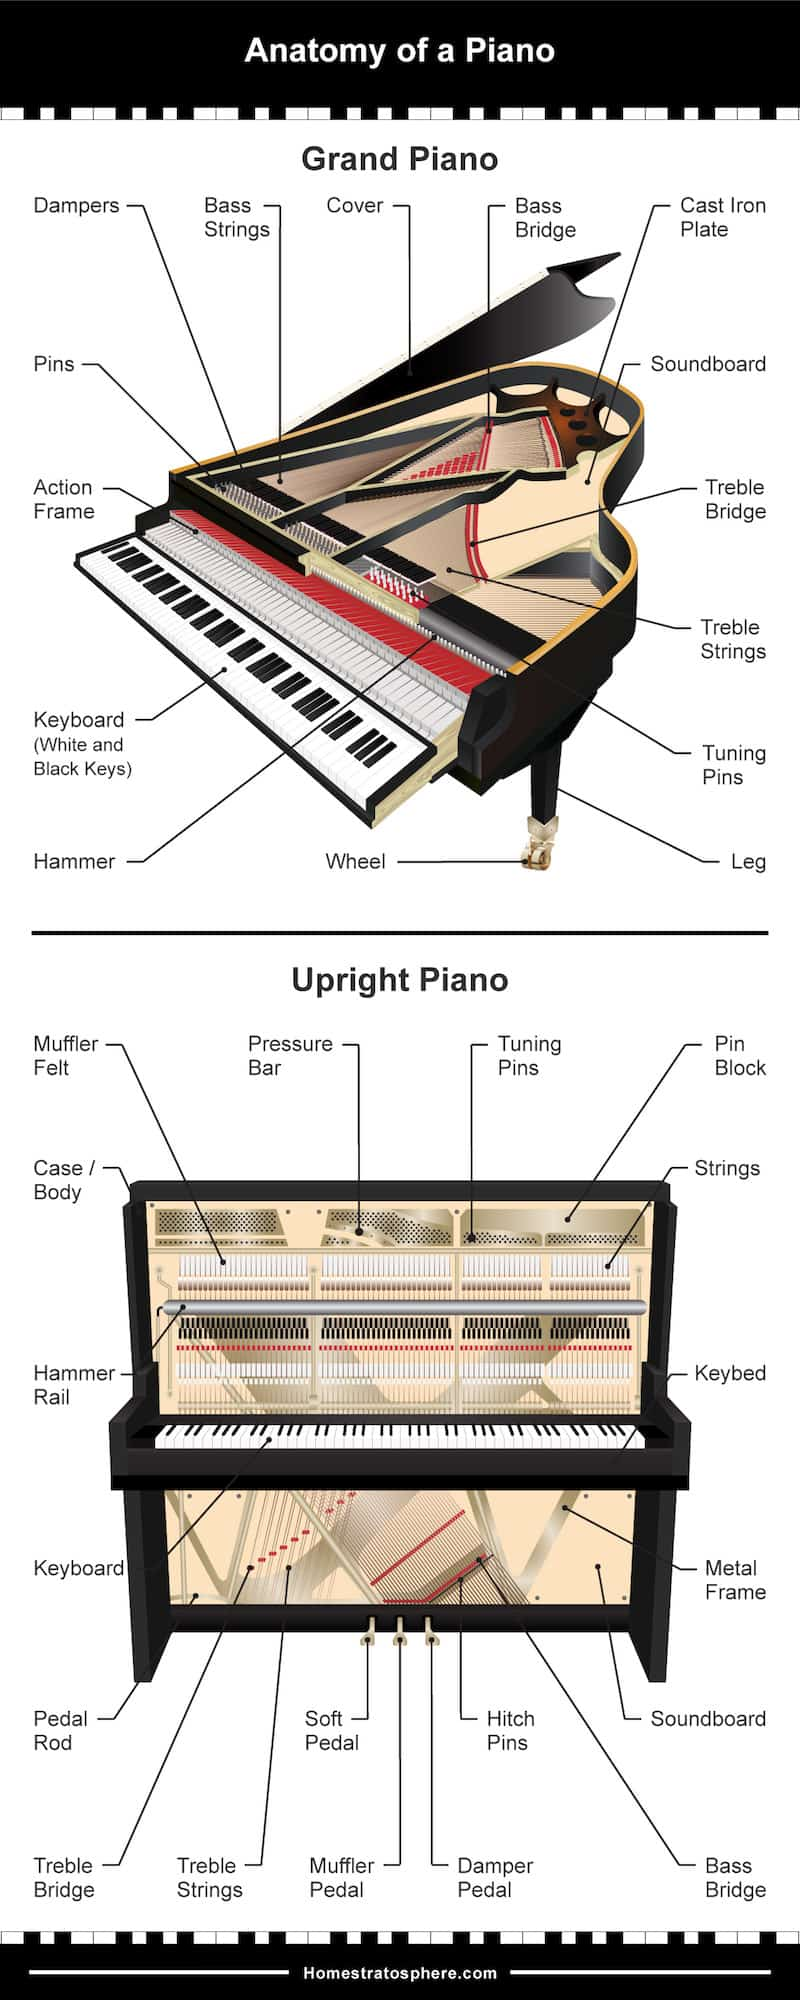 2 diagrams showing the exterior and interior parts of a piano